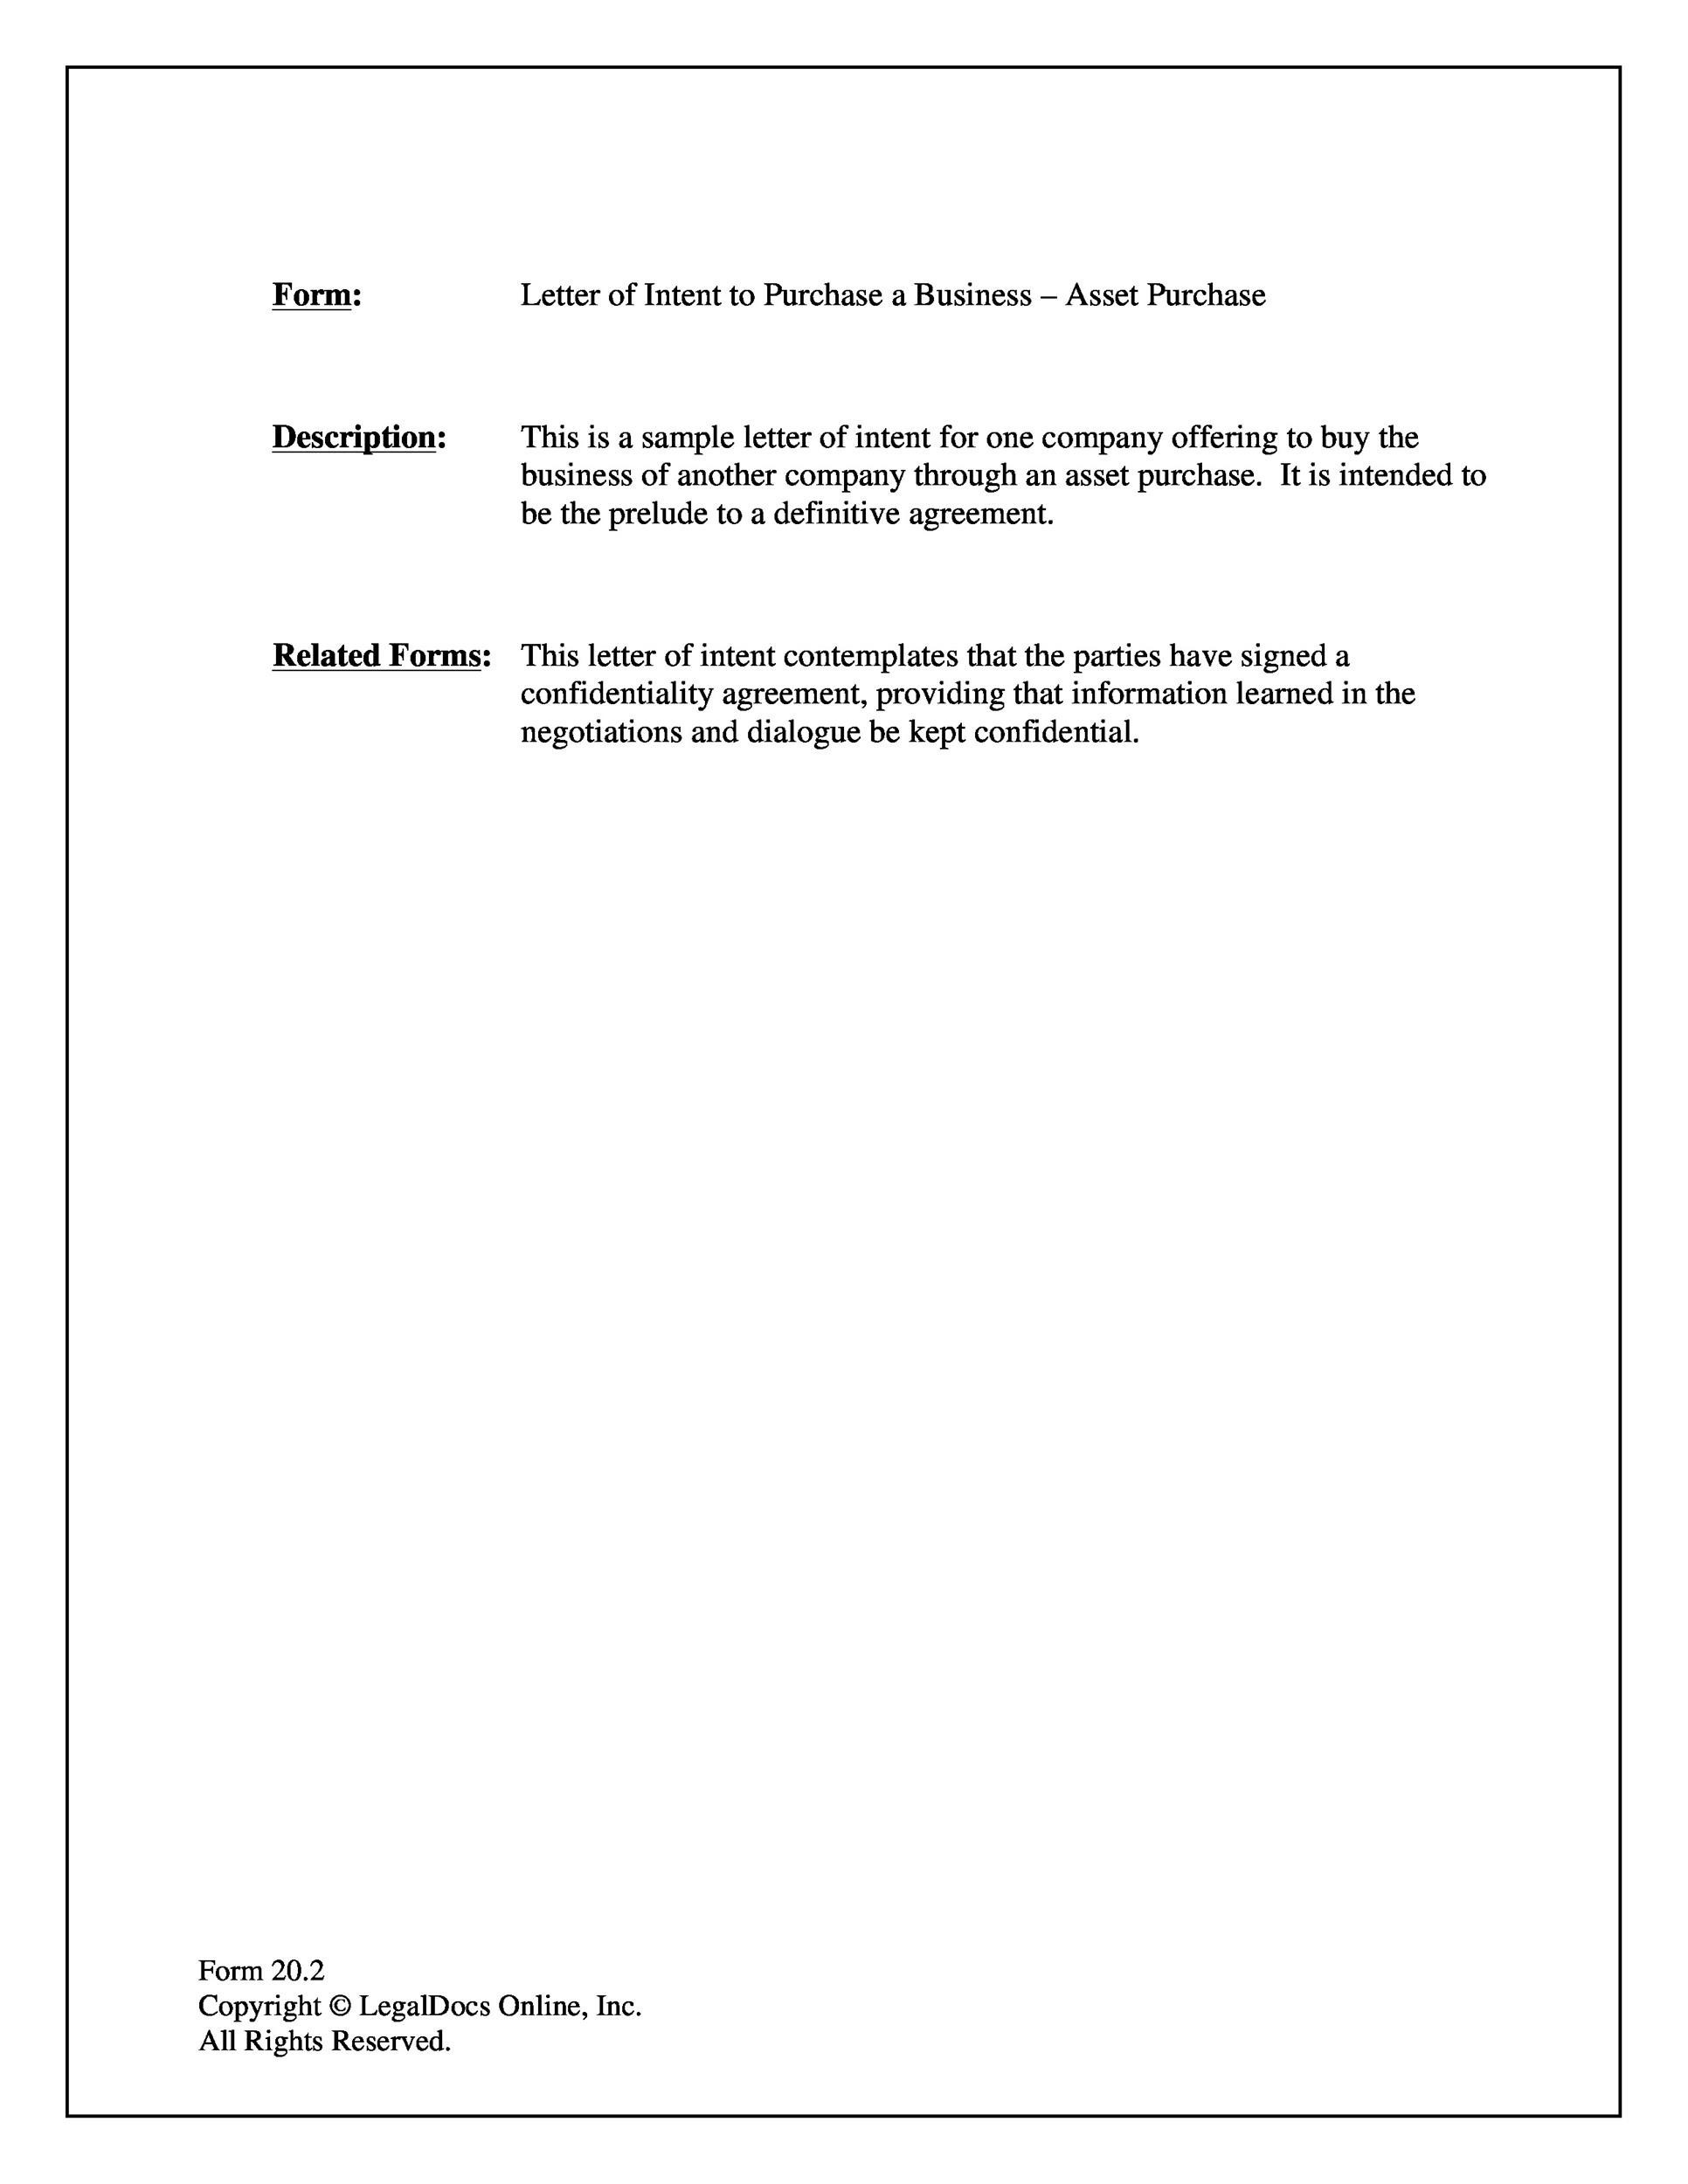 Sample Professional Letter Formats to Download